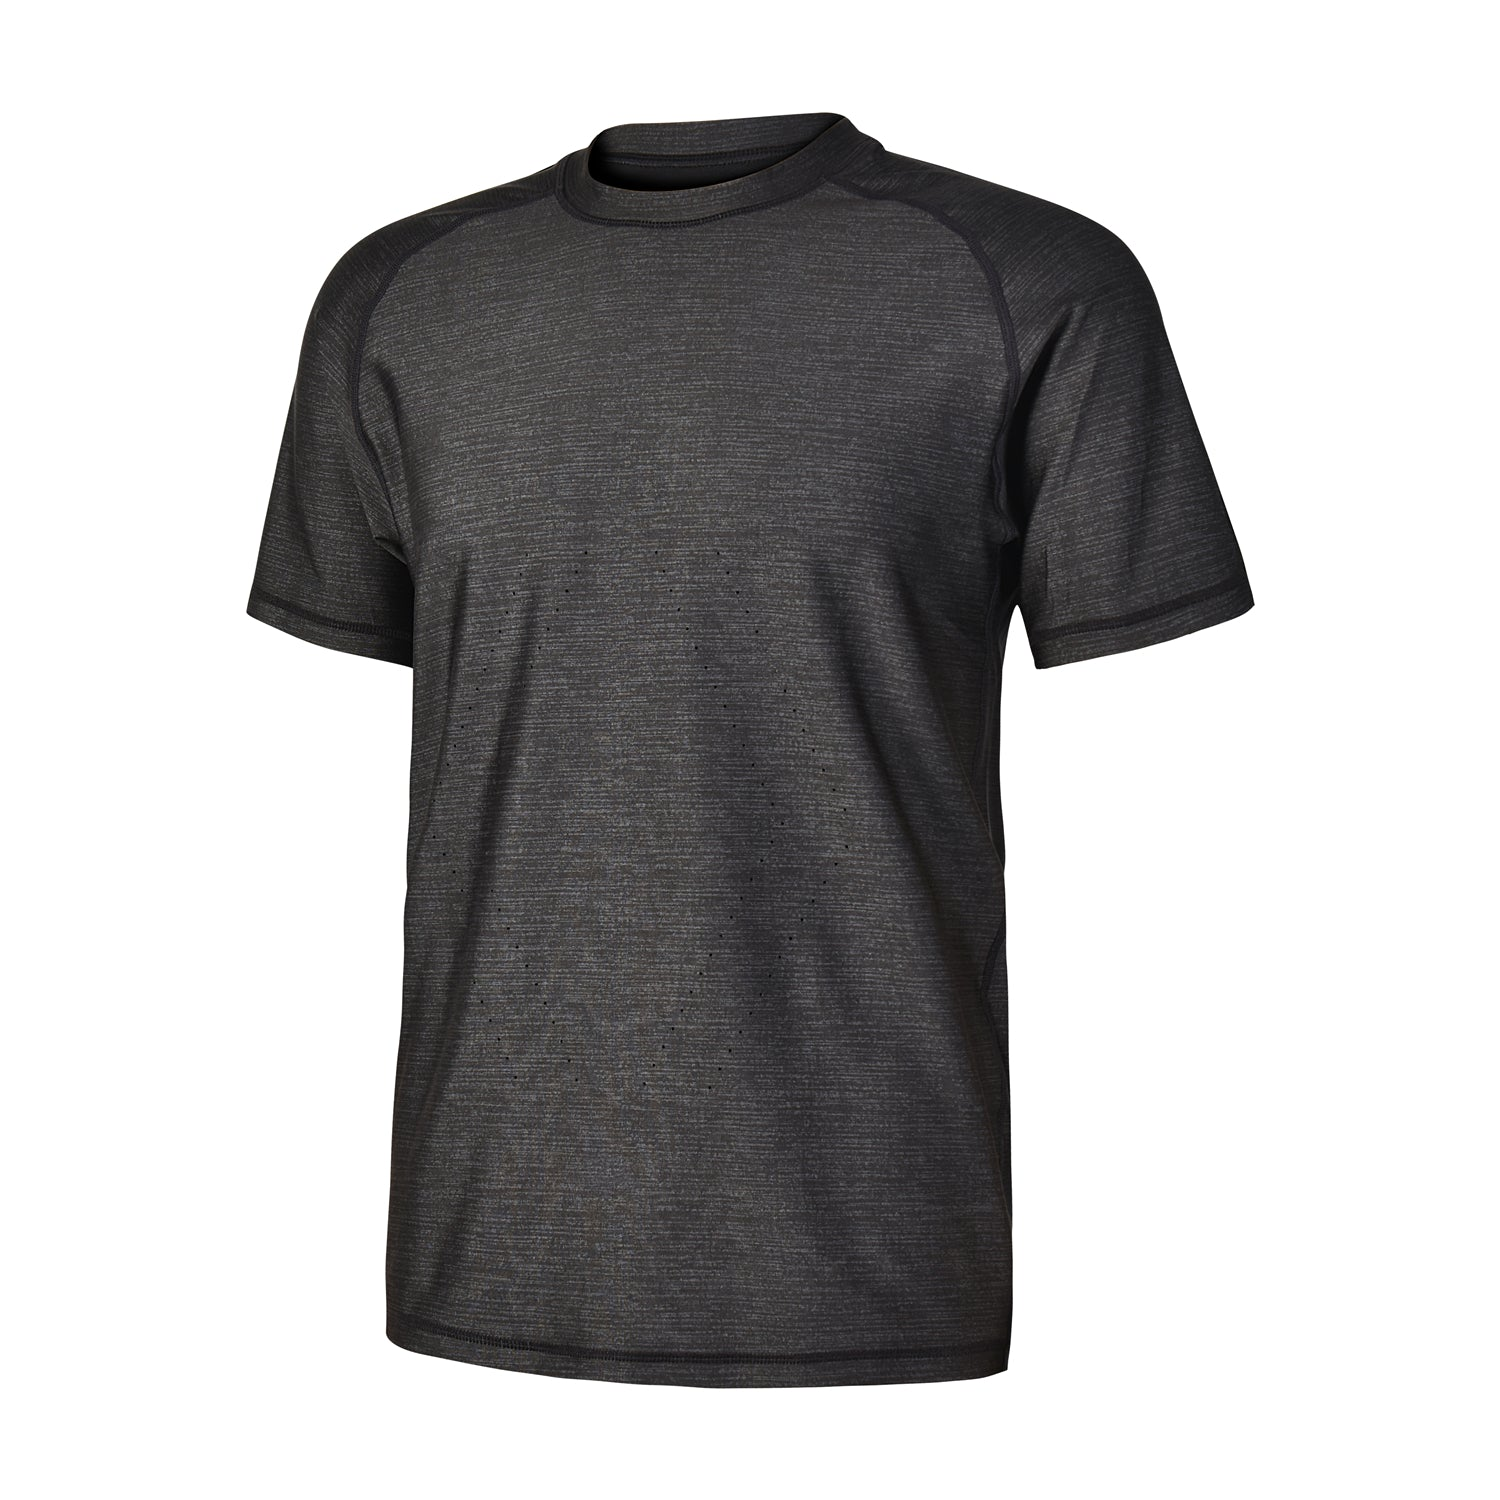 "Men's functional workout t-shirt "" Kinney"" - IAM3F"